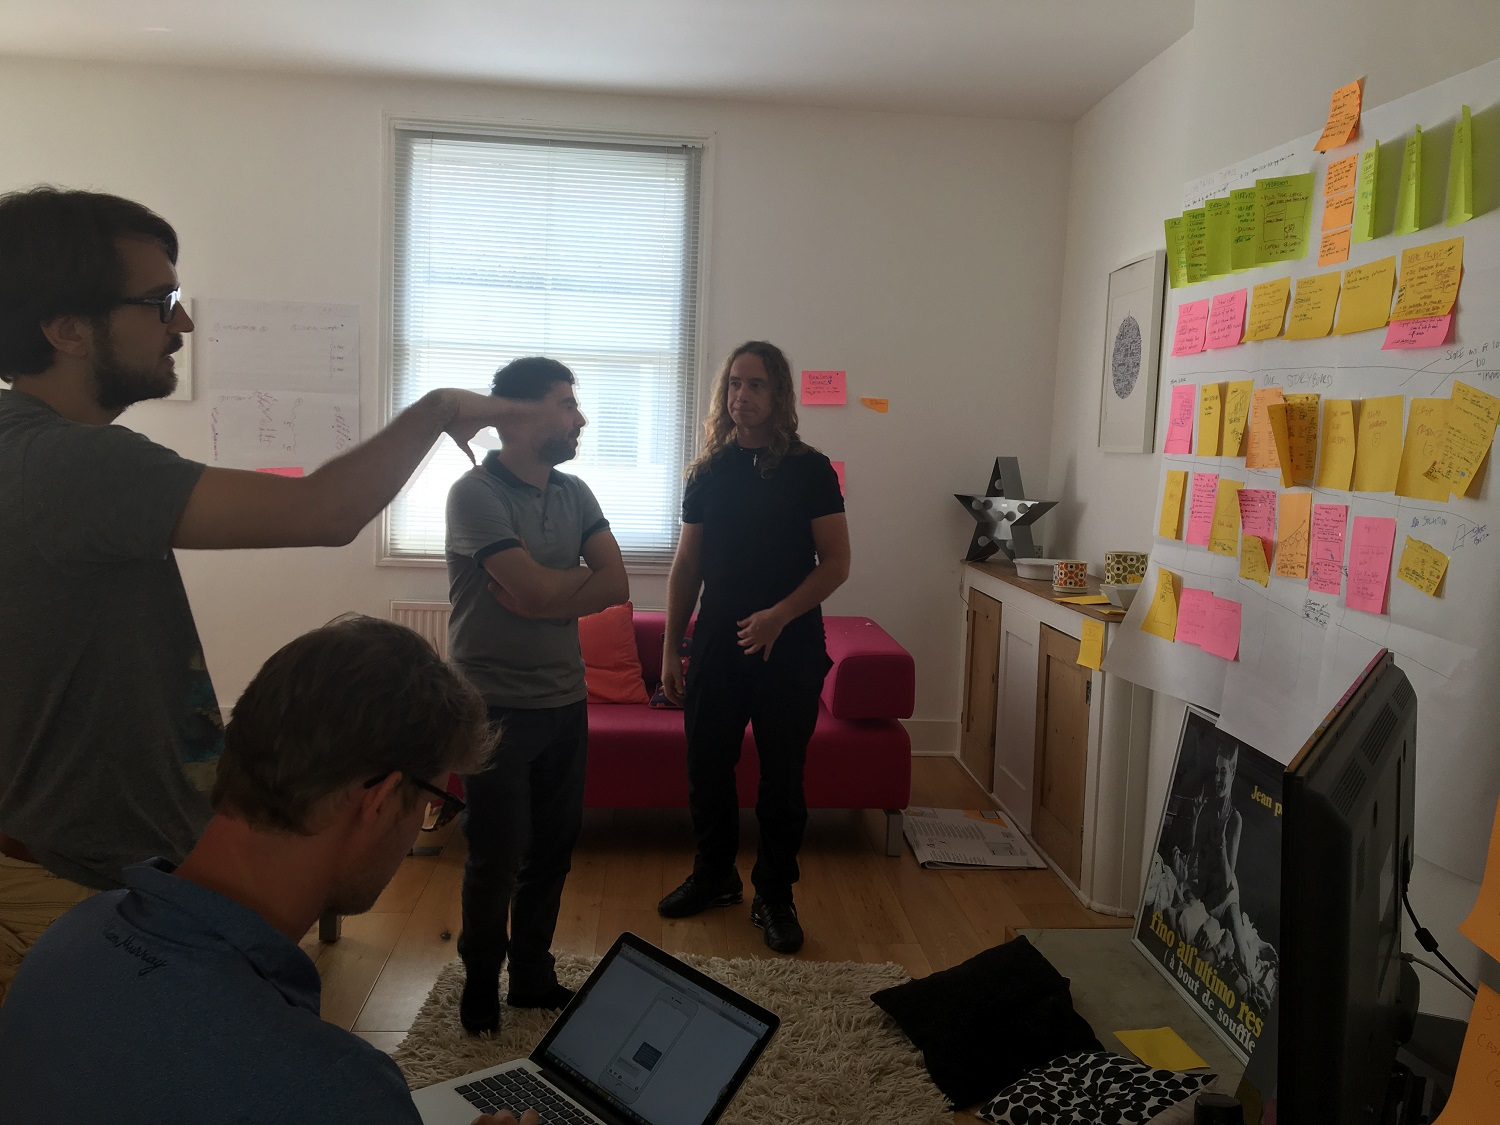 Working on our storyboard